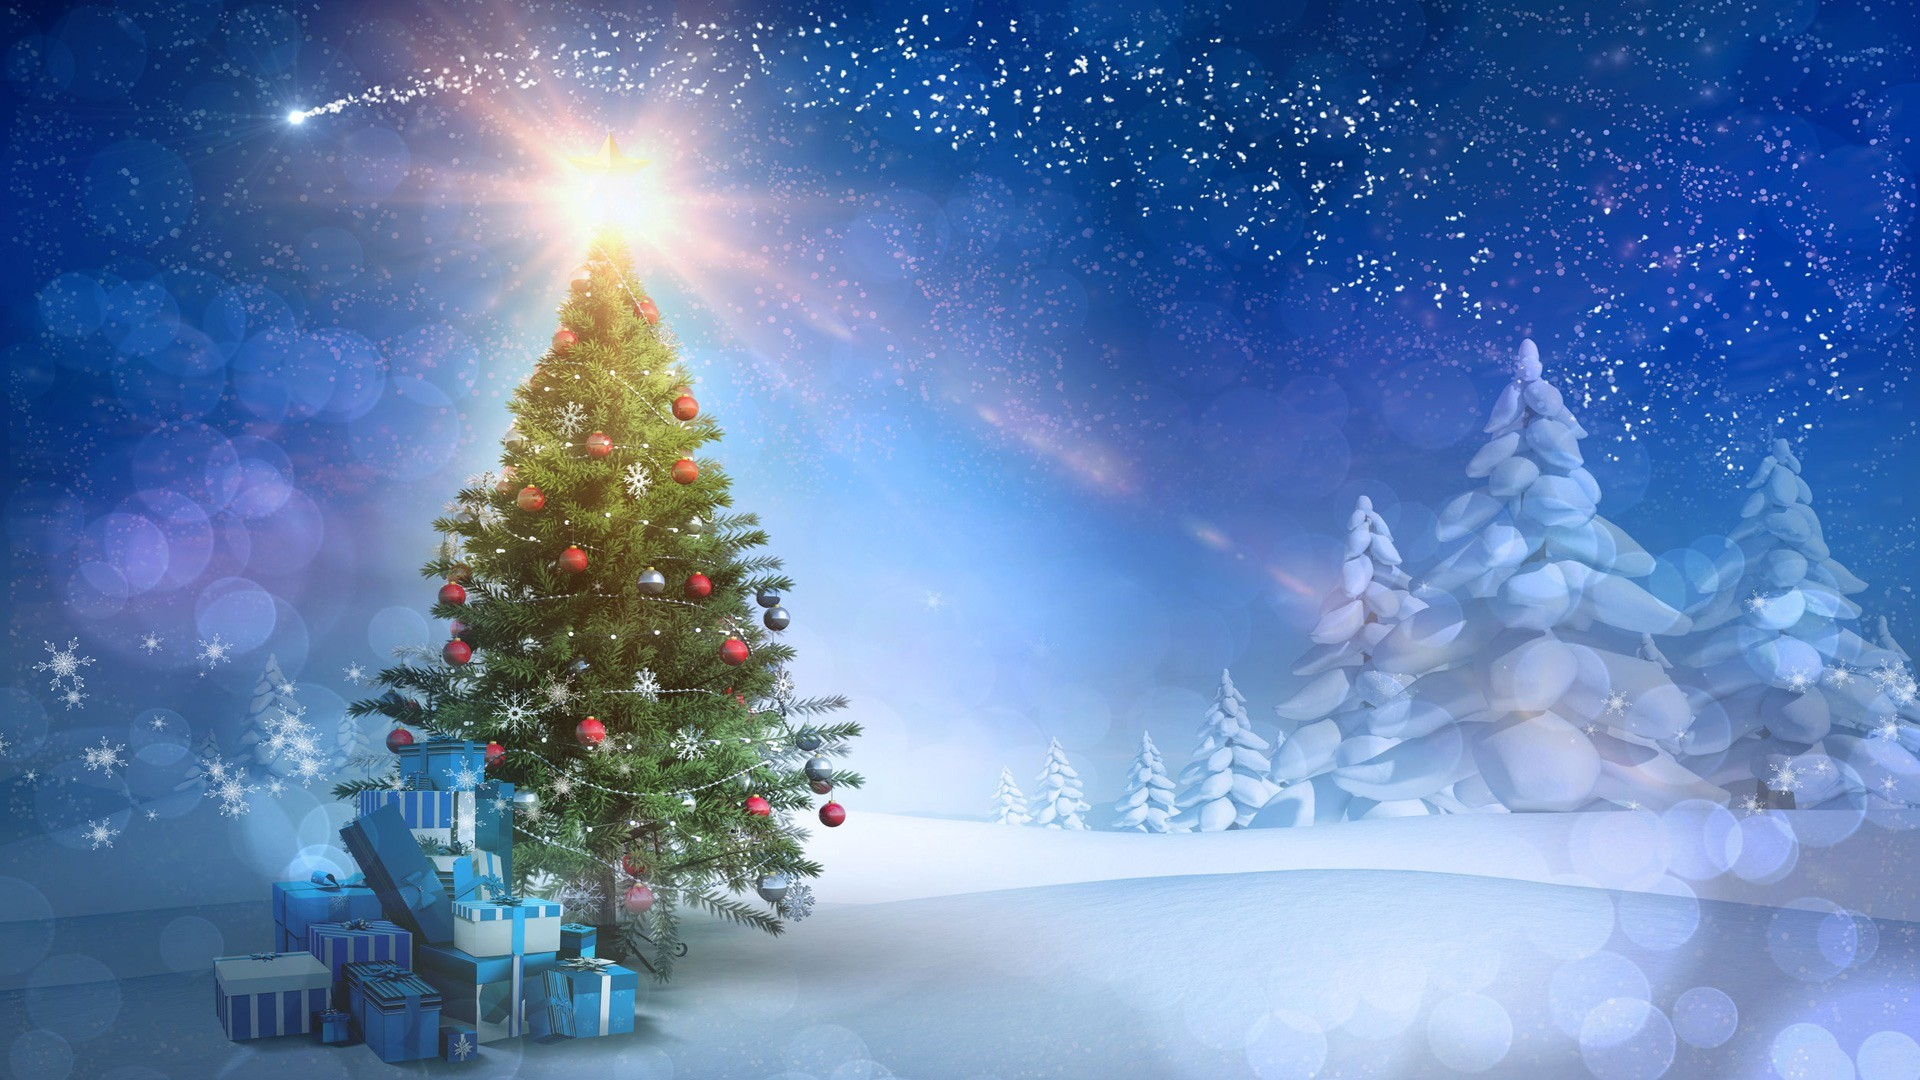 1920x1080 Christmas tree hd wallpaper